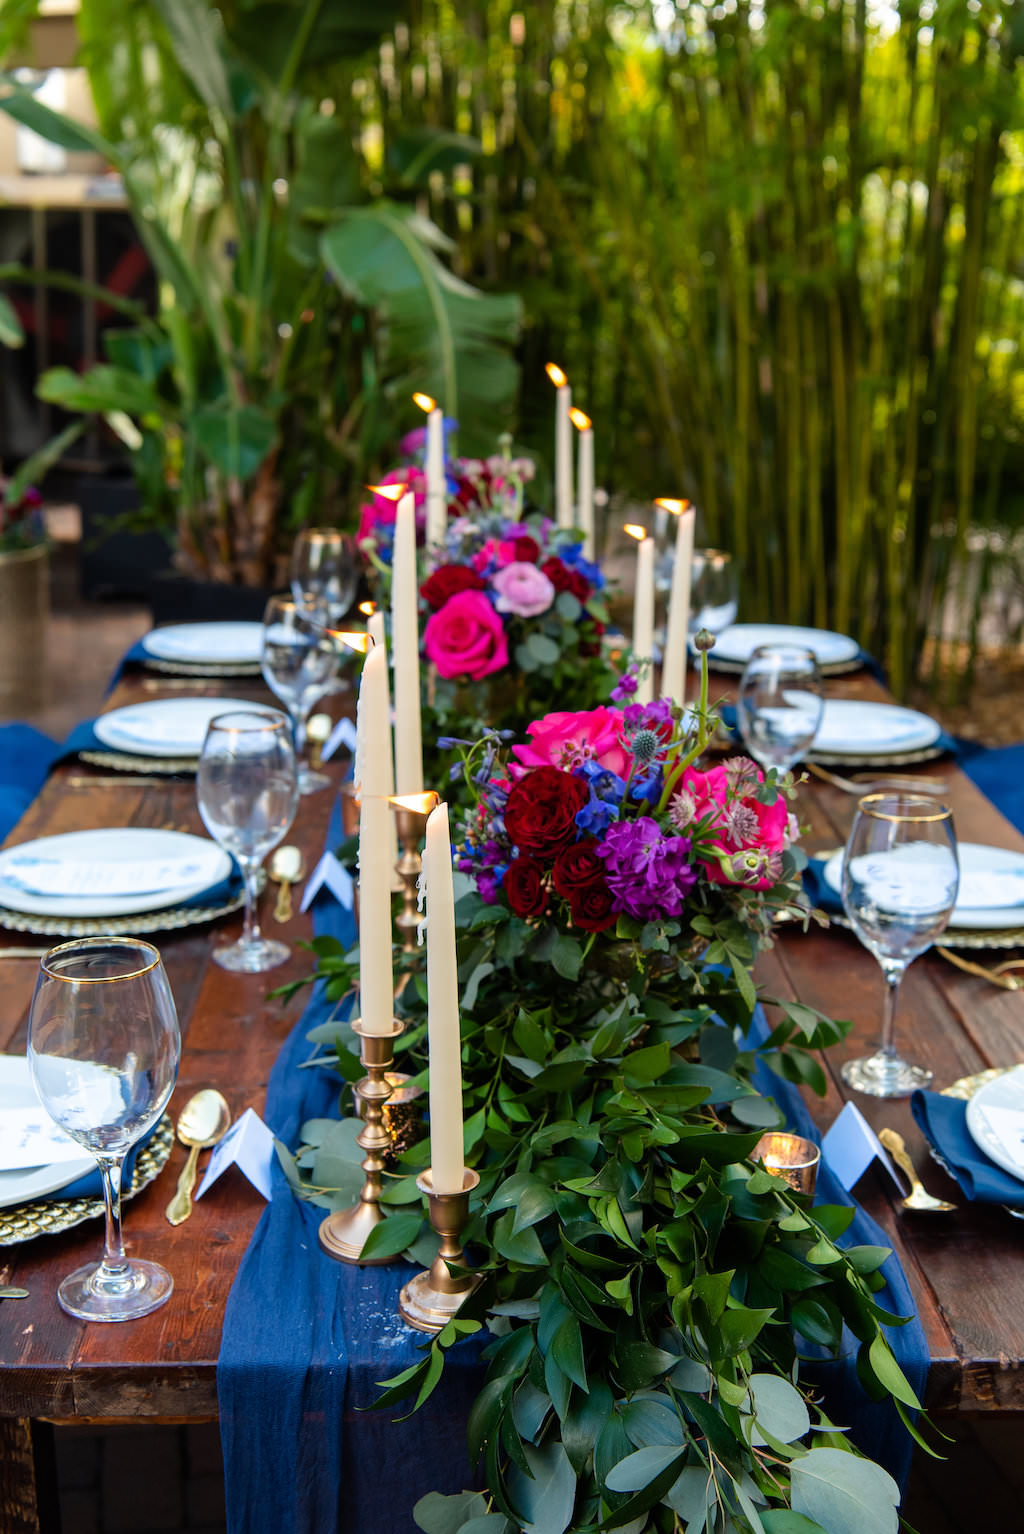 Wedding Reception Decor, Long Wooden Table with Velvet Blue Pillows, Blue Table Runner and Linens, Pale Blue Plates, Gold Silverware, Small and Tall Gold Candlesticks, Greenery Garland, Pink, Blue, and Red Low Floral Centerpieces, Bamboo Garden Backdrop | St. Pete Wedding Venue NOVA 535 | Tampa Bay Wedding Photographer Caroline and Evan Photography | Florist Monarch Events and Design | Designer and Planner Southern Weddings and Events | Rentals A Chair Affair